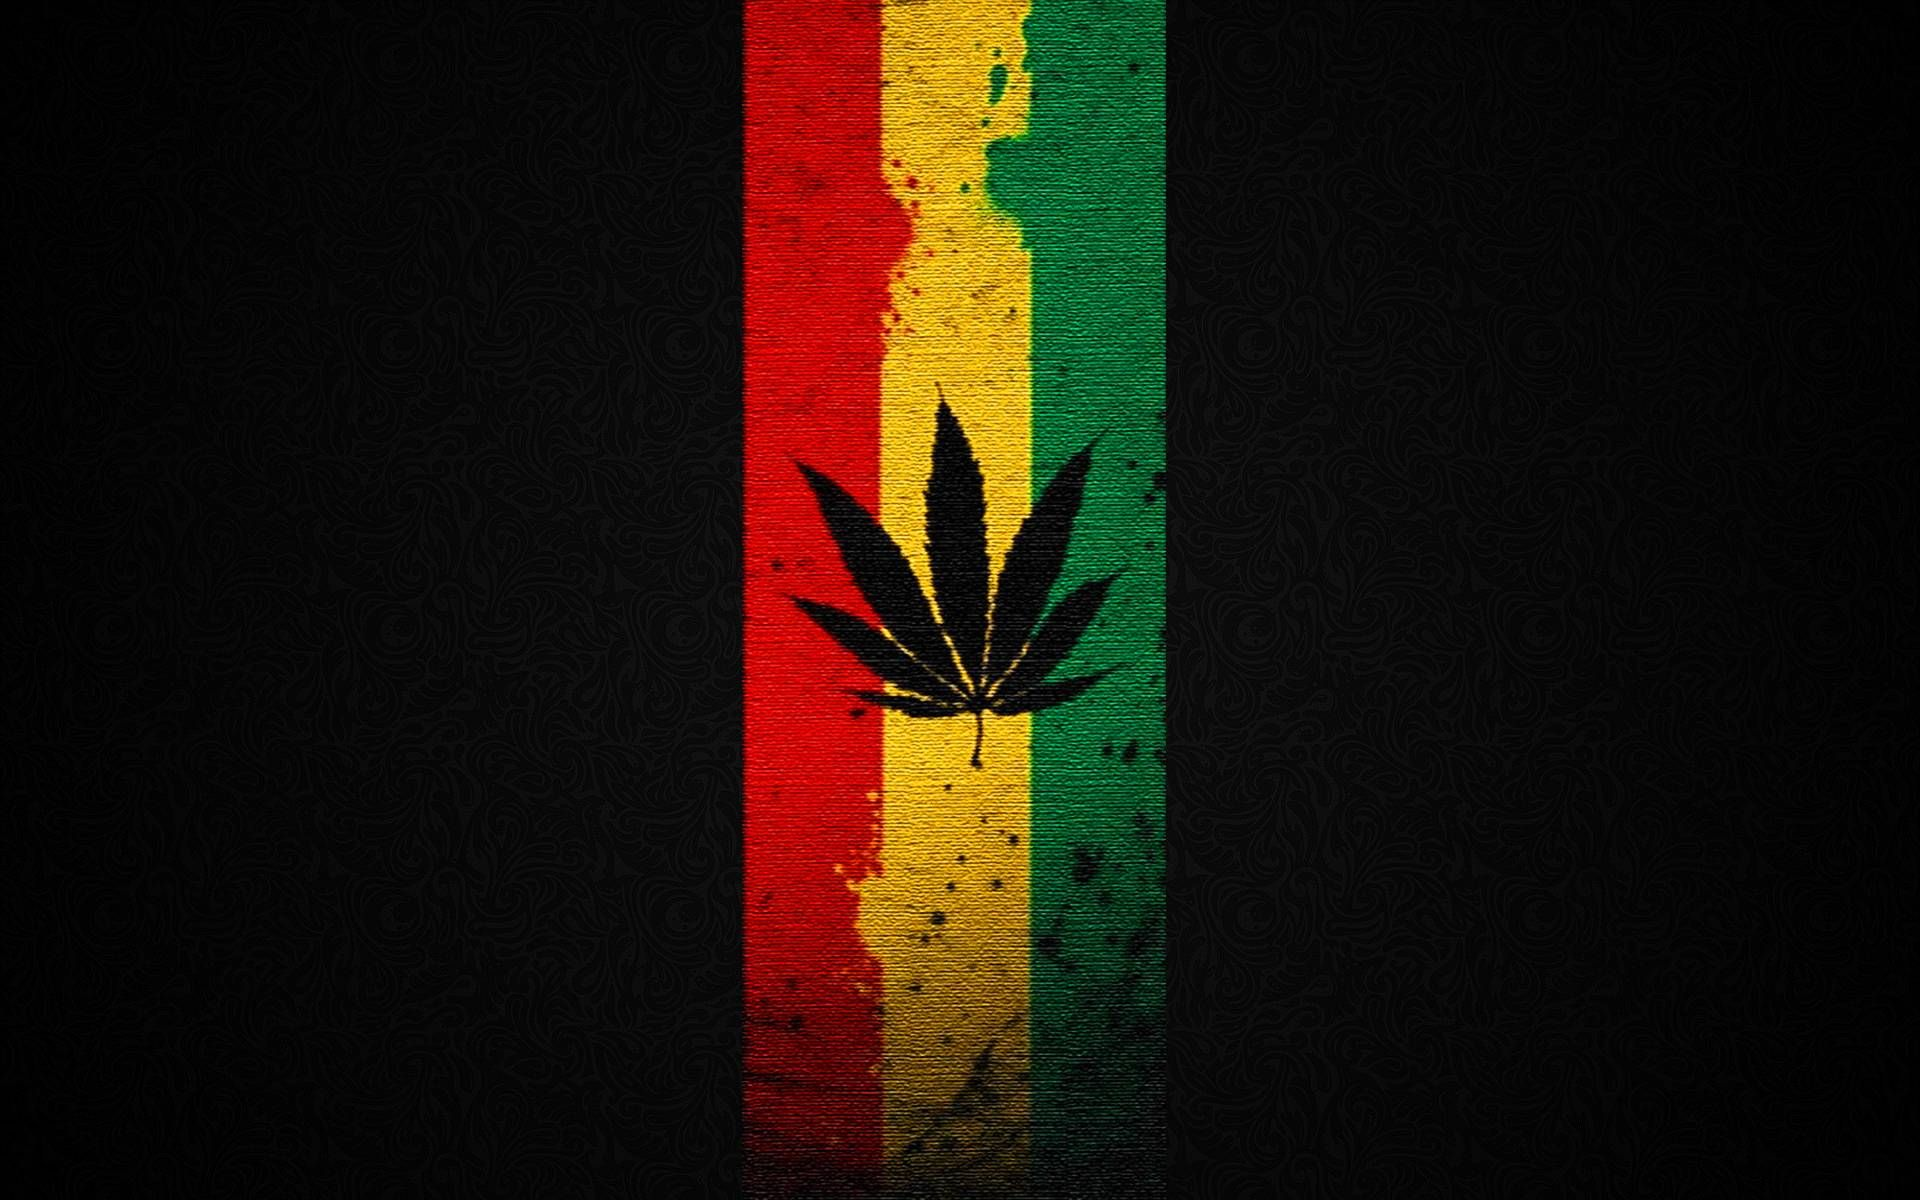 Hd Rasta Wallpapers Wallpaper Wallpapers Pinterest Weed